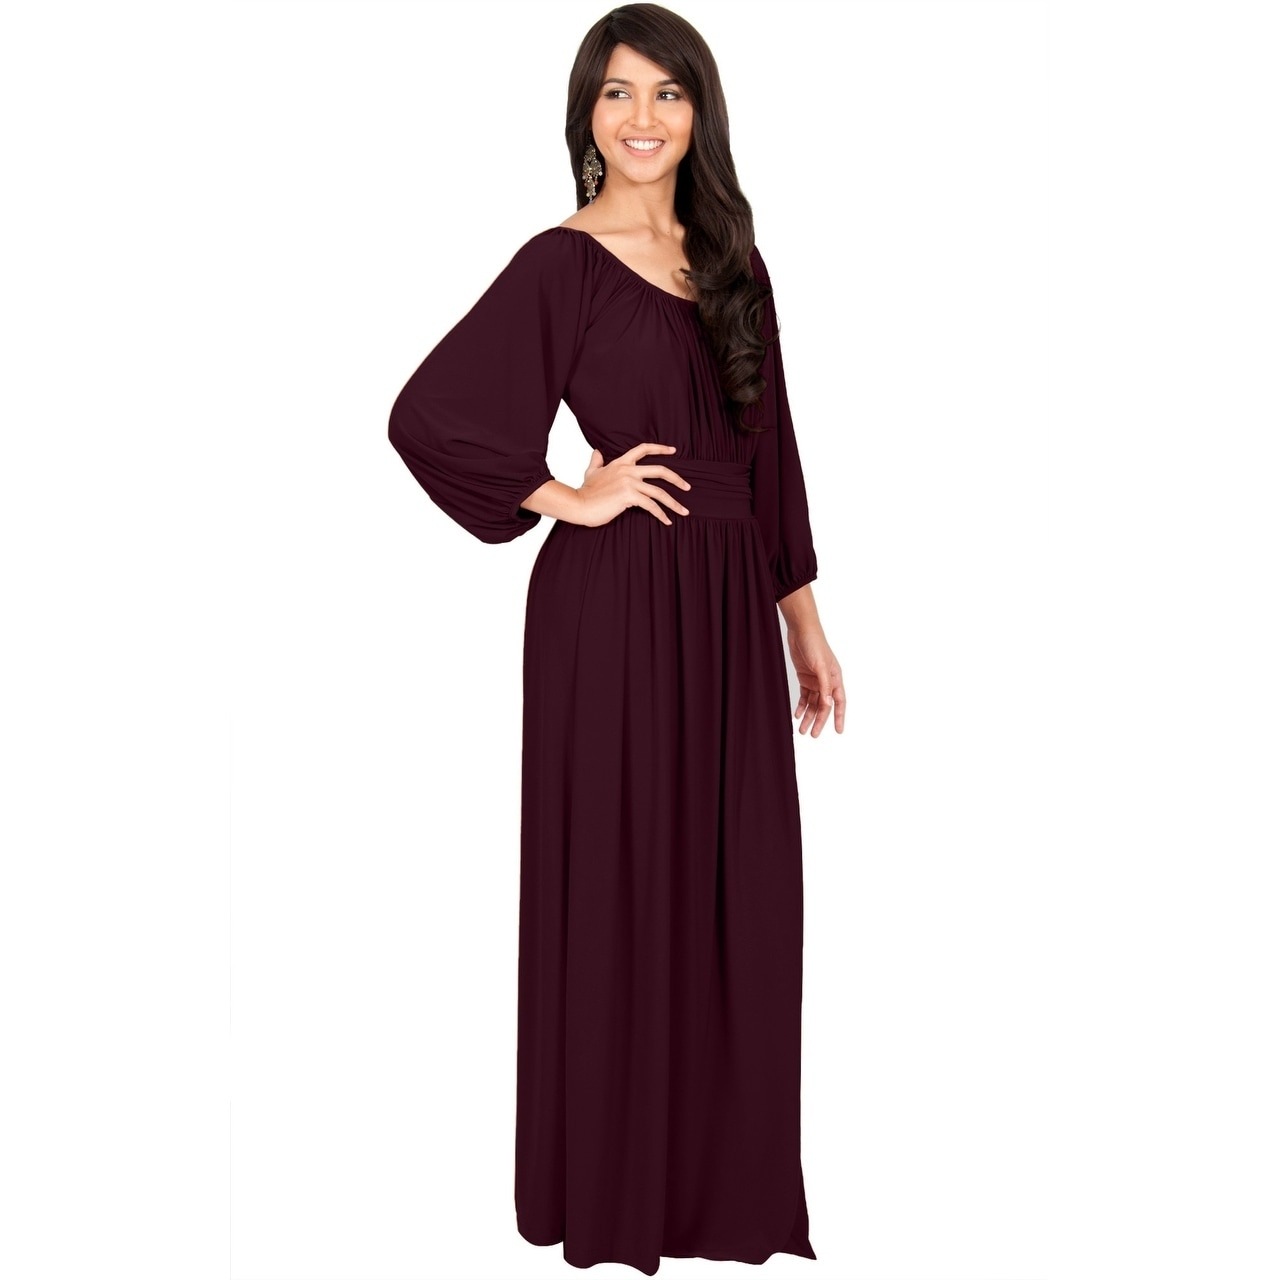 ed9b8205070c Shop KOH KOH Womens Long Sleeve Round Neck Empire Waistline Full Maxi Dress  - Free Shipping Today - Overstock - 11643513